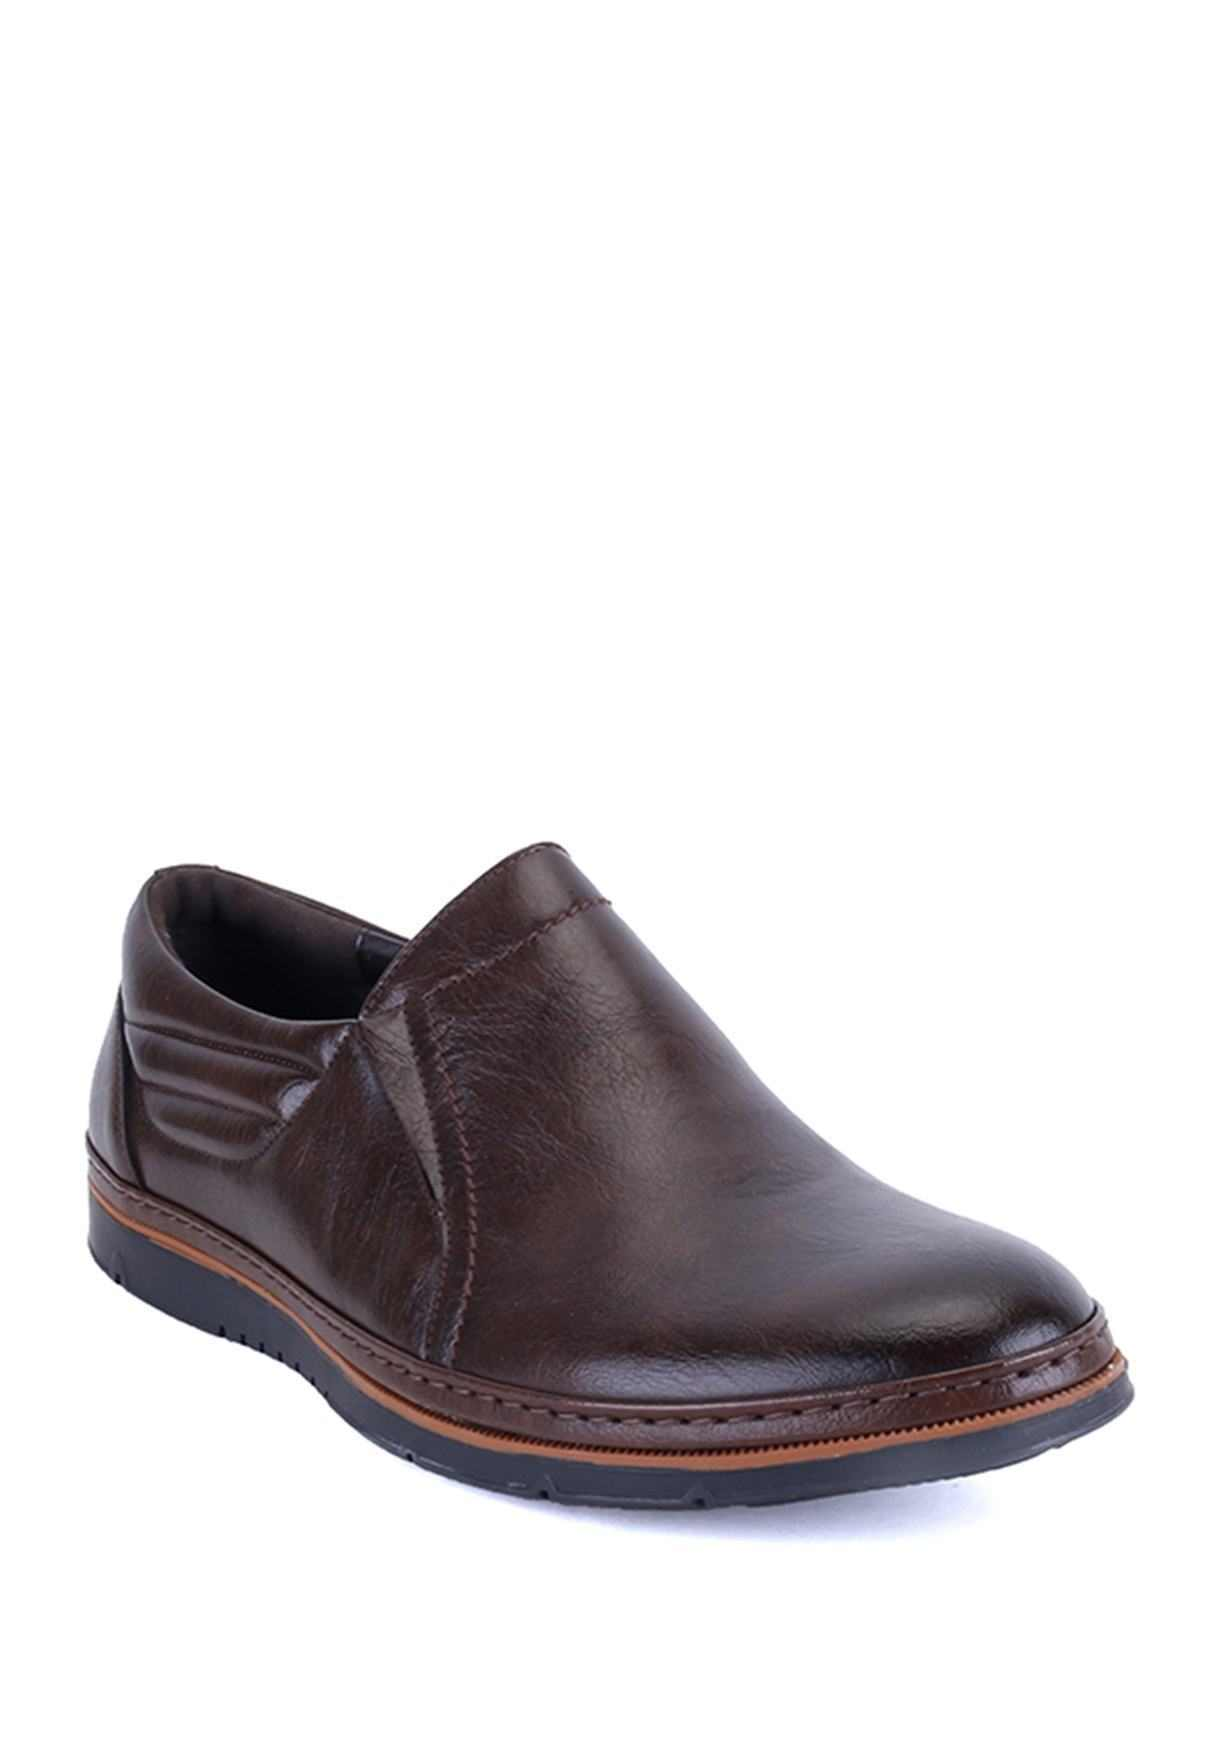 Men's Flat Shoes